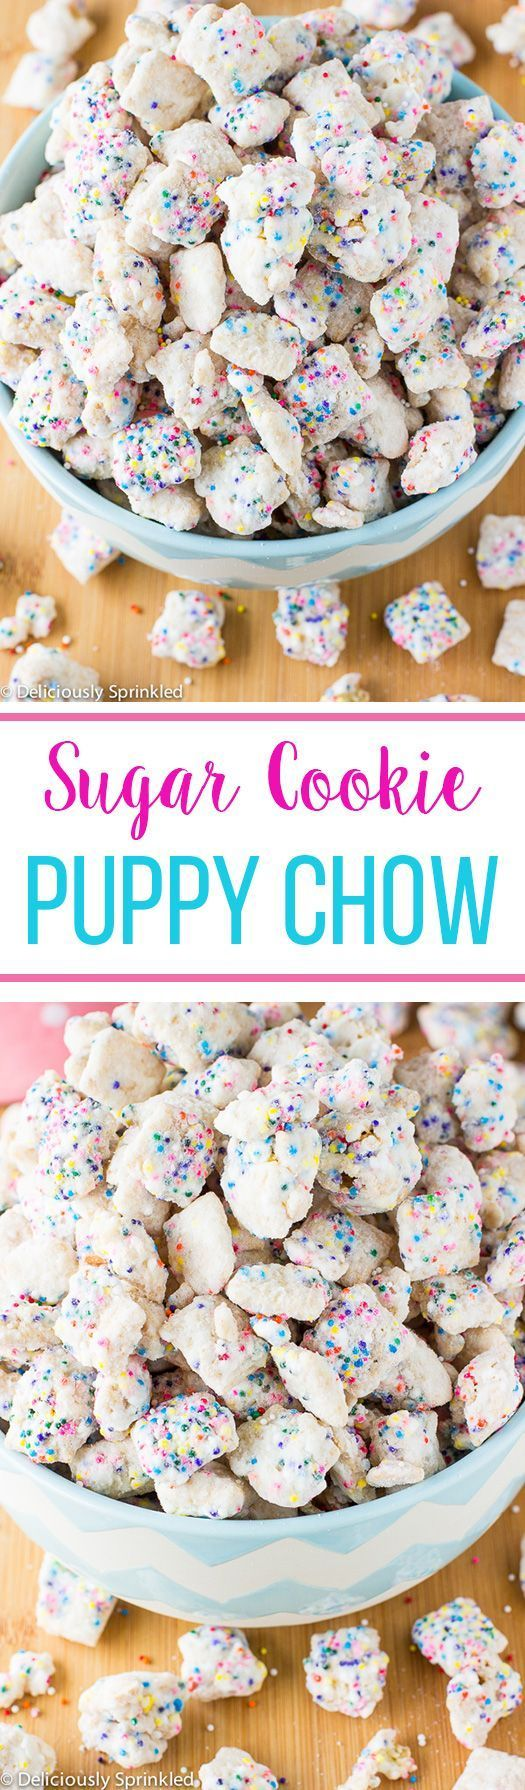 No-Bake Sugar Cookie Puppy Chow Recipe